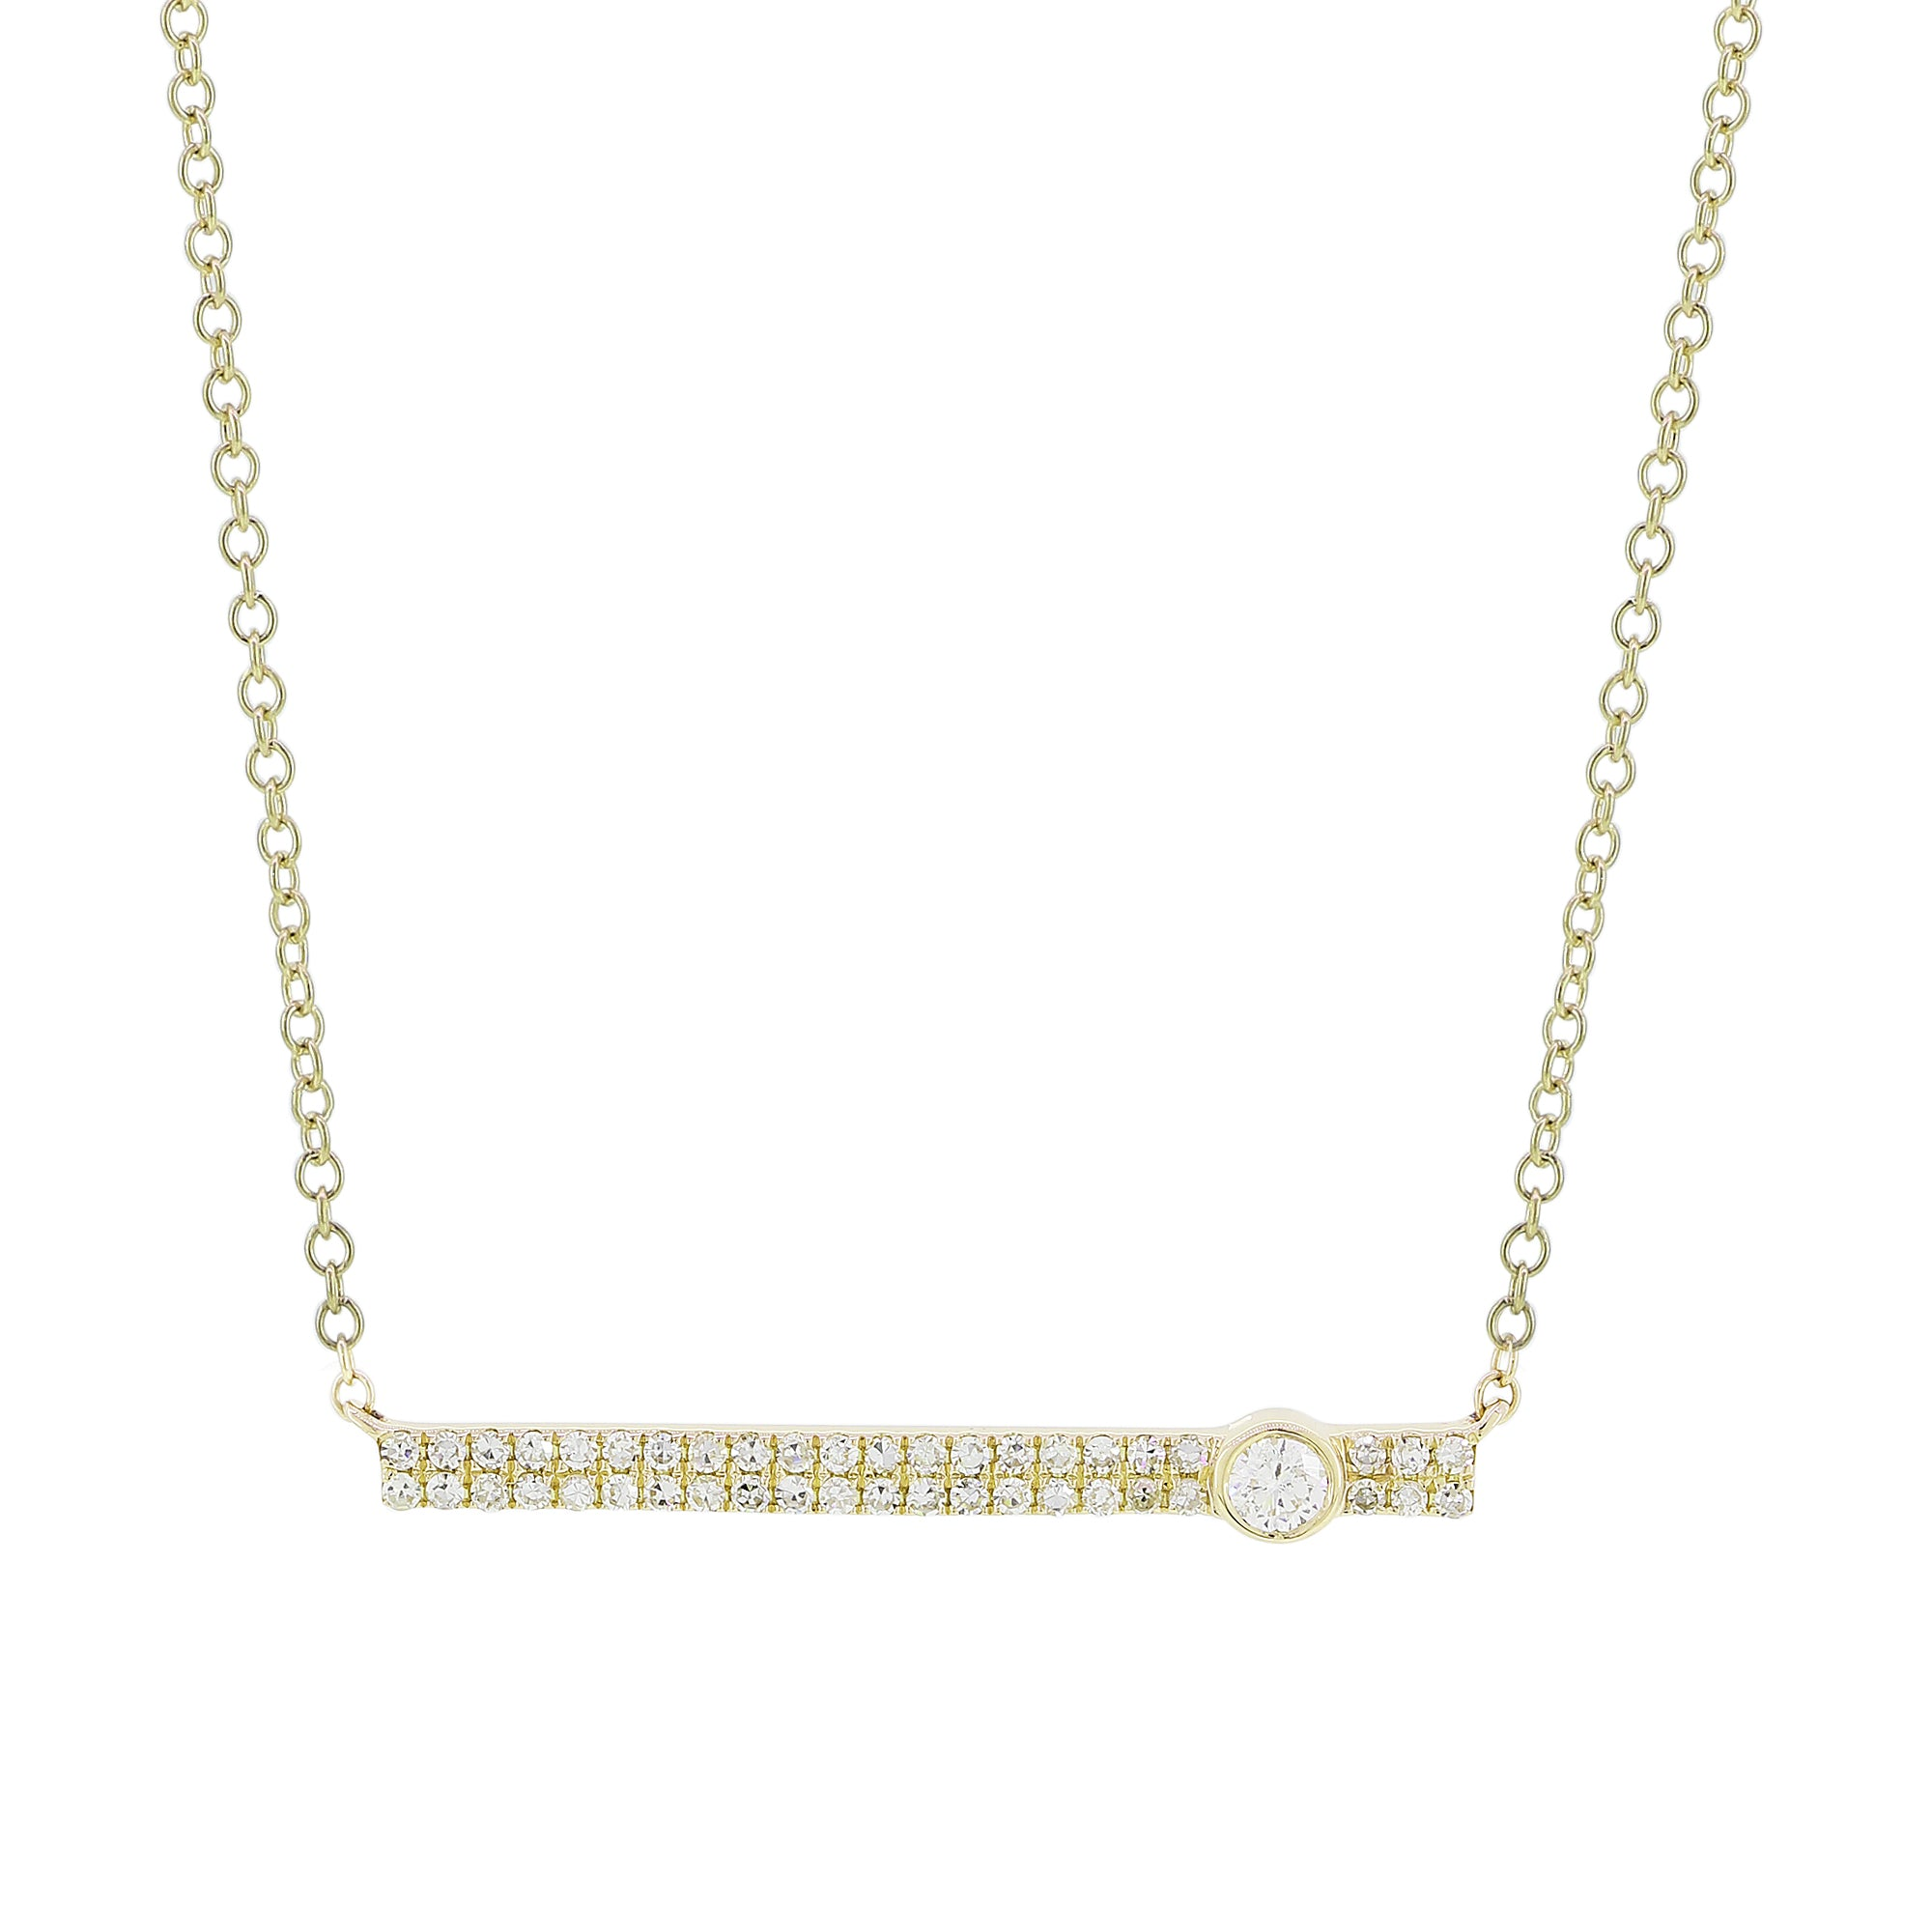 14K Yellow Gold with Diamonds Necklace